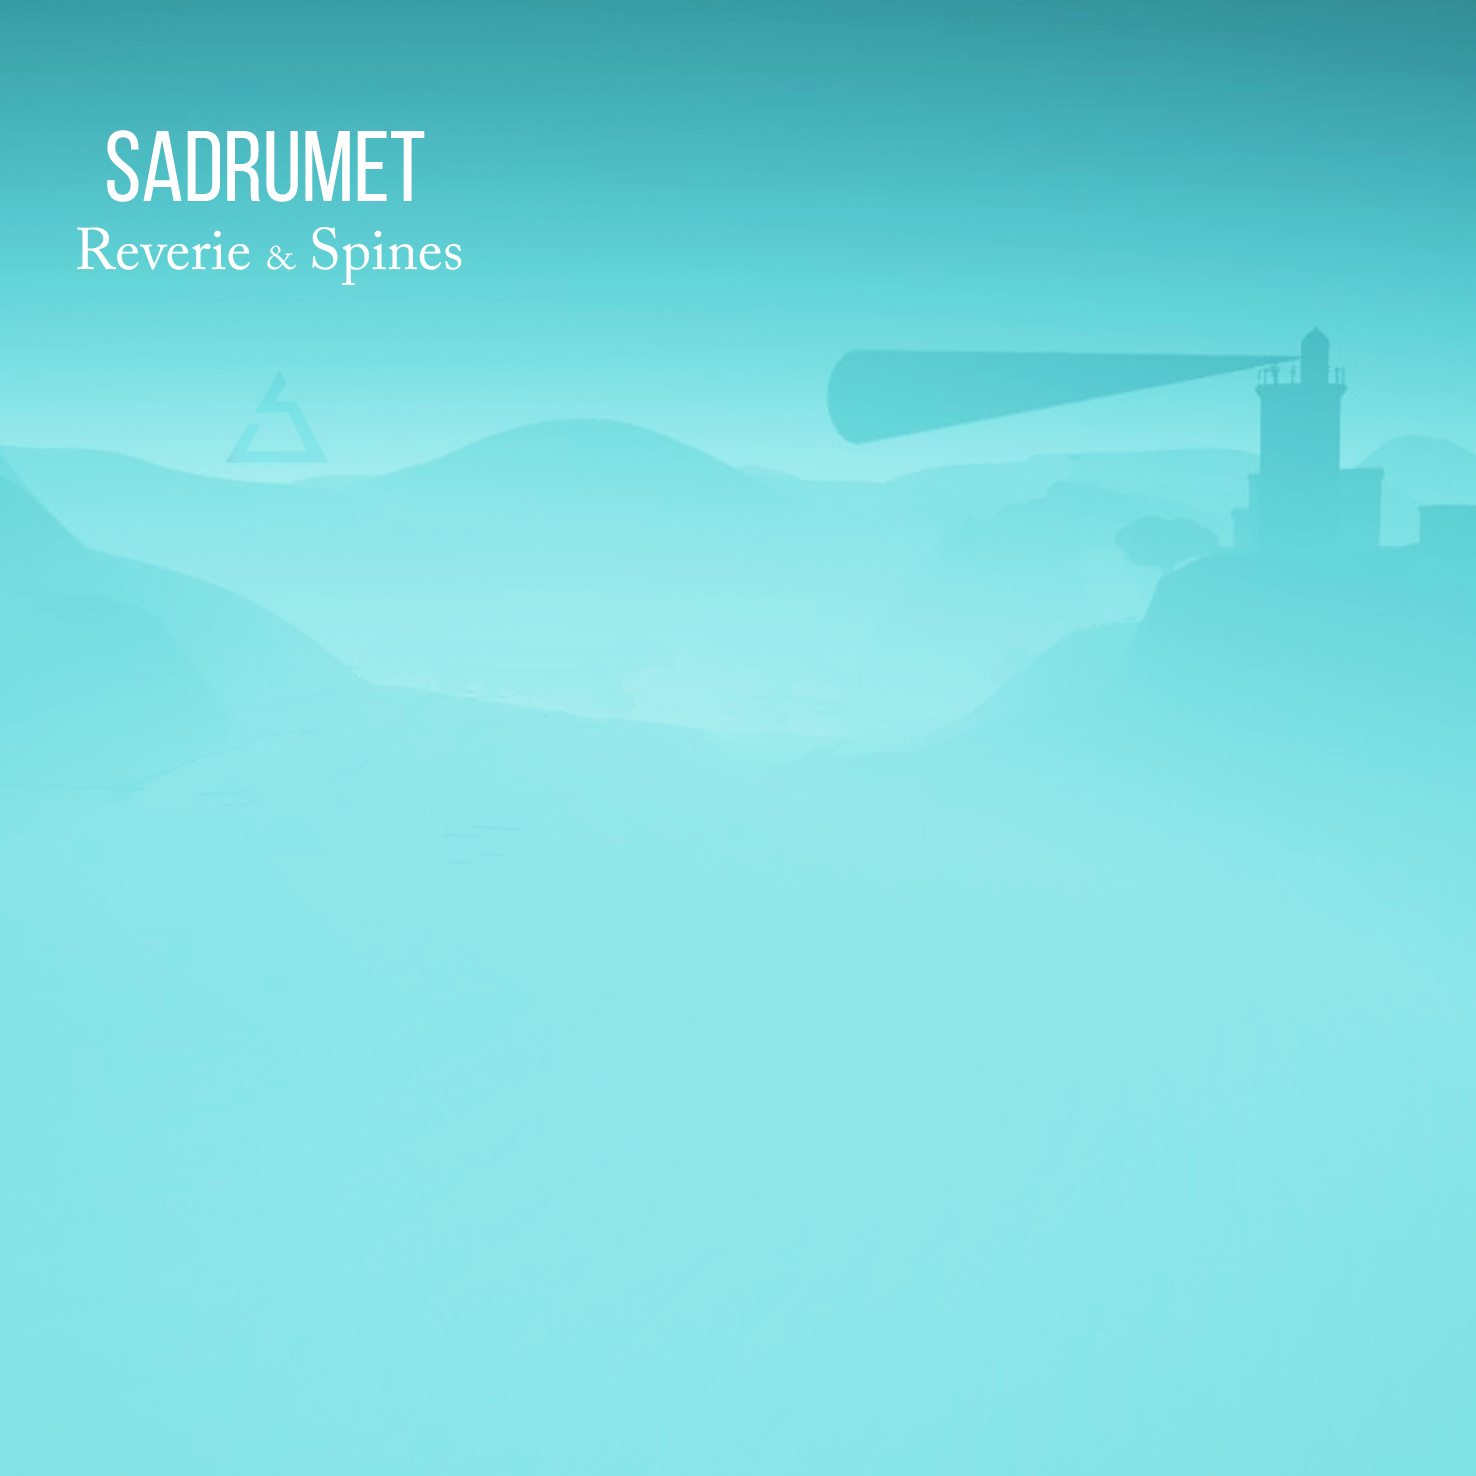 Reverie & Spines streaming on Spotify